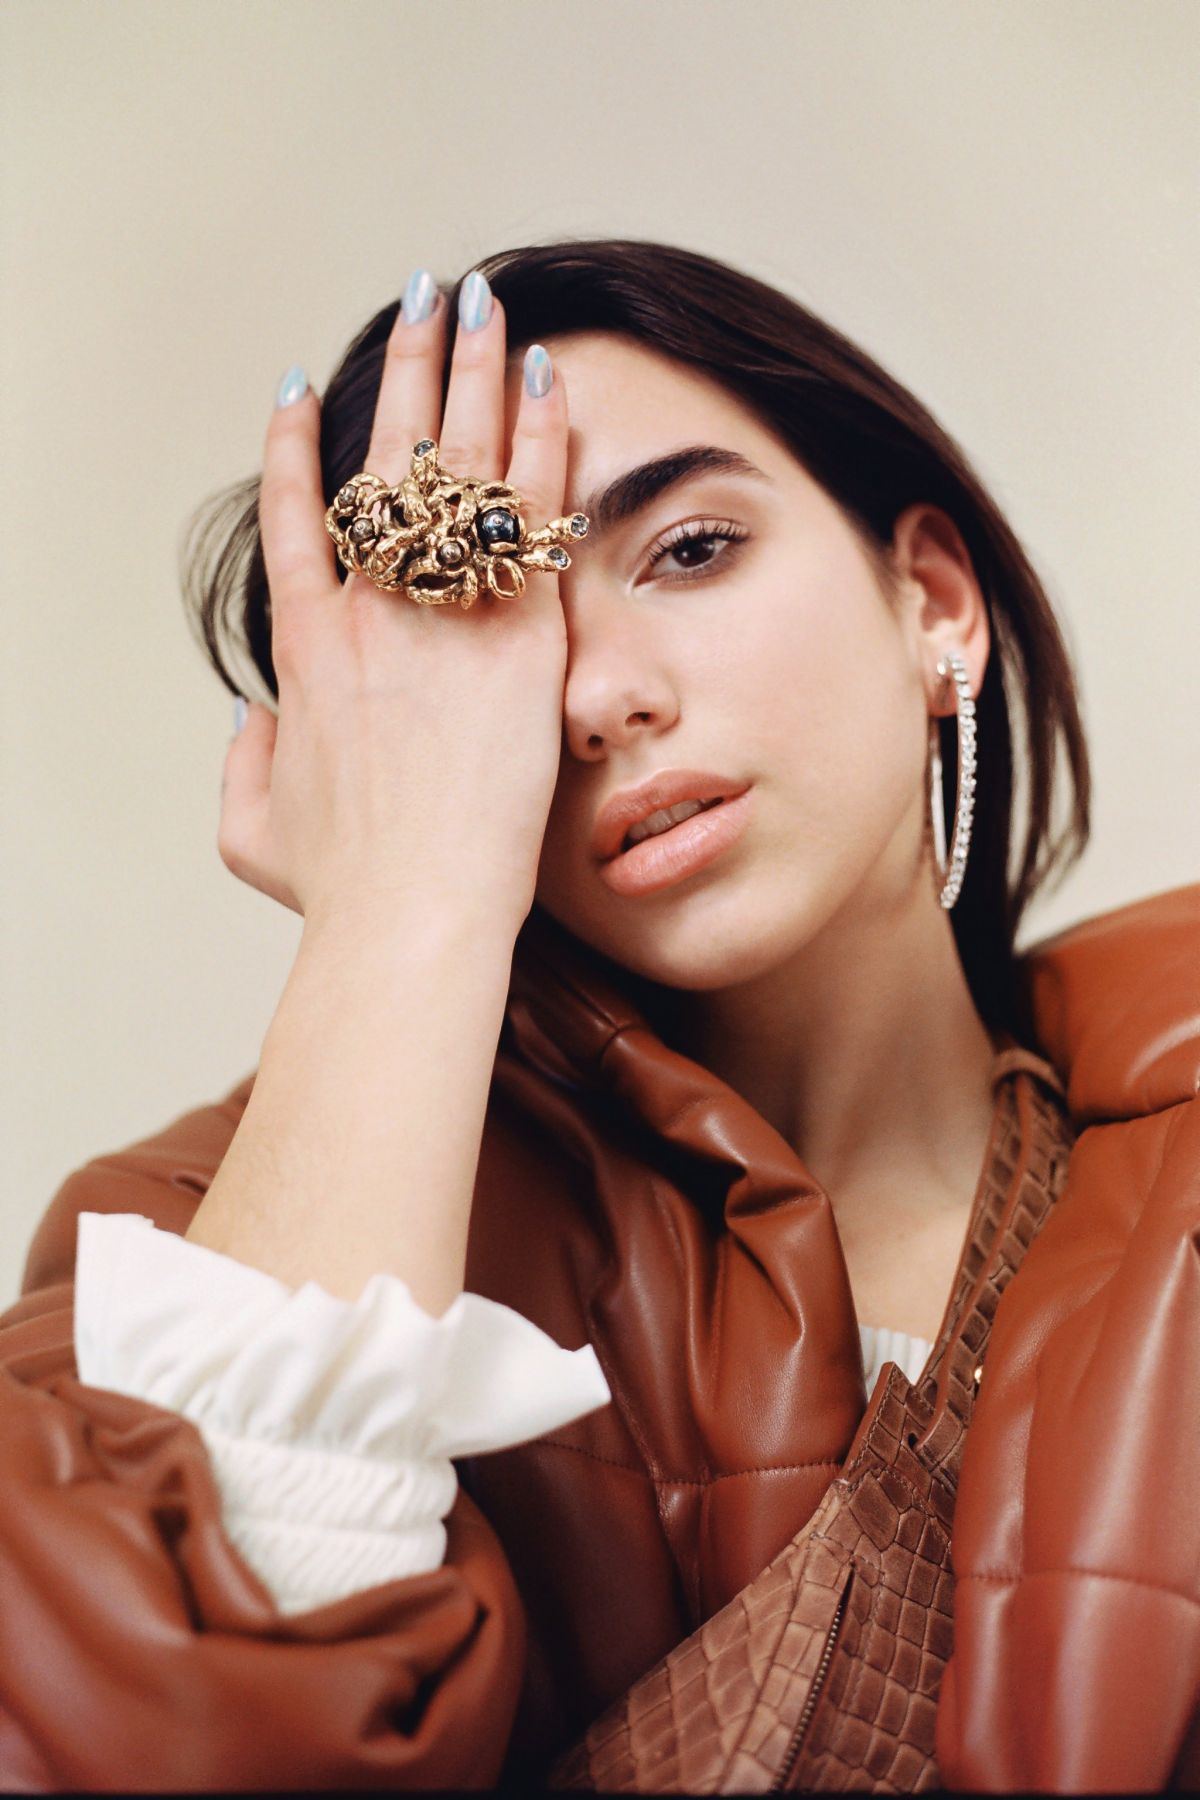 dua lipa - photo #19